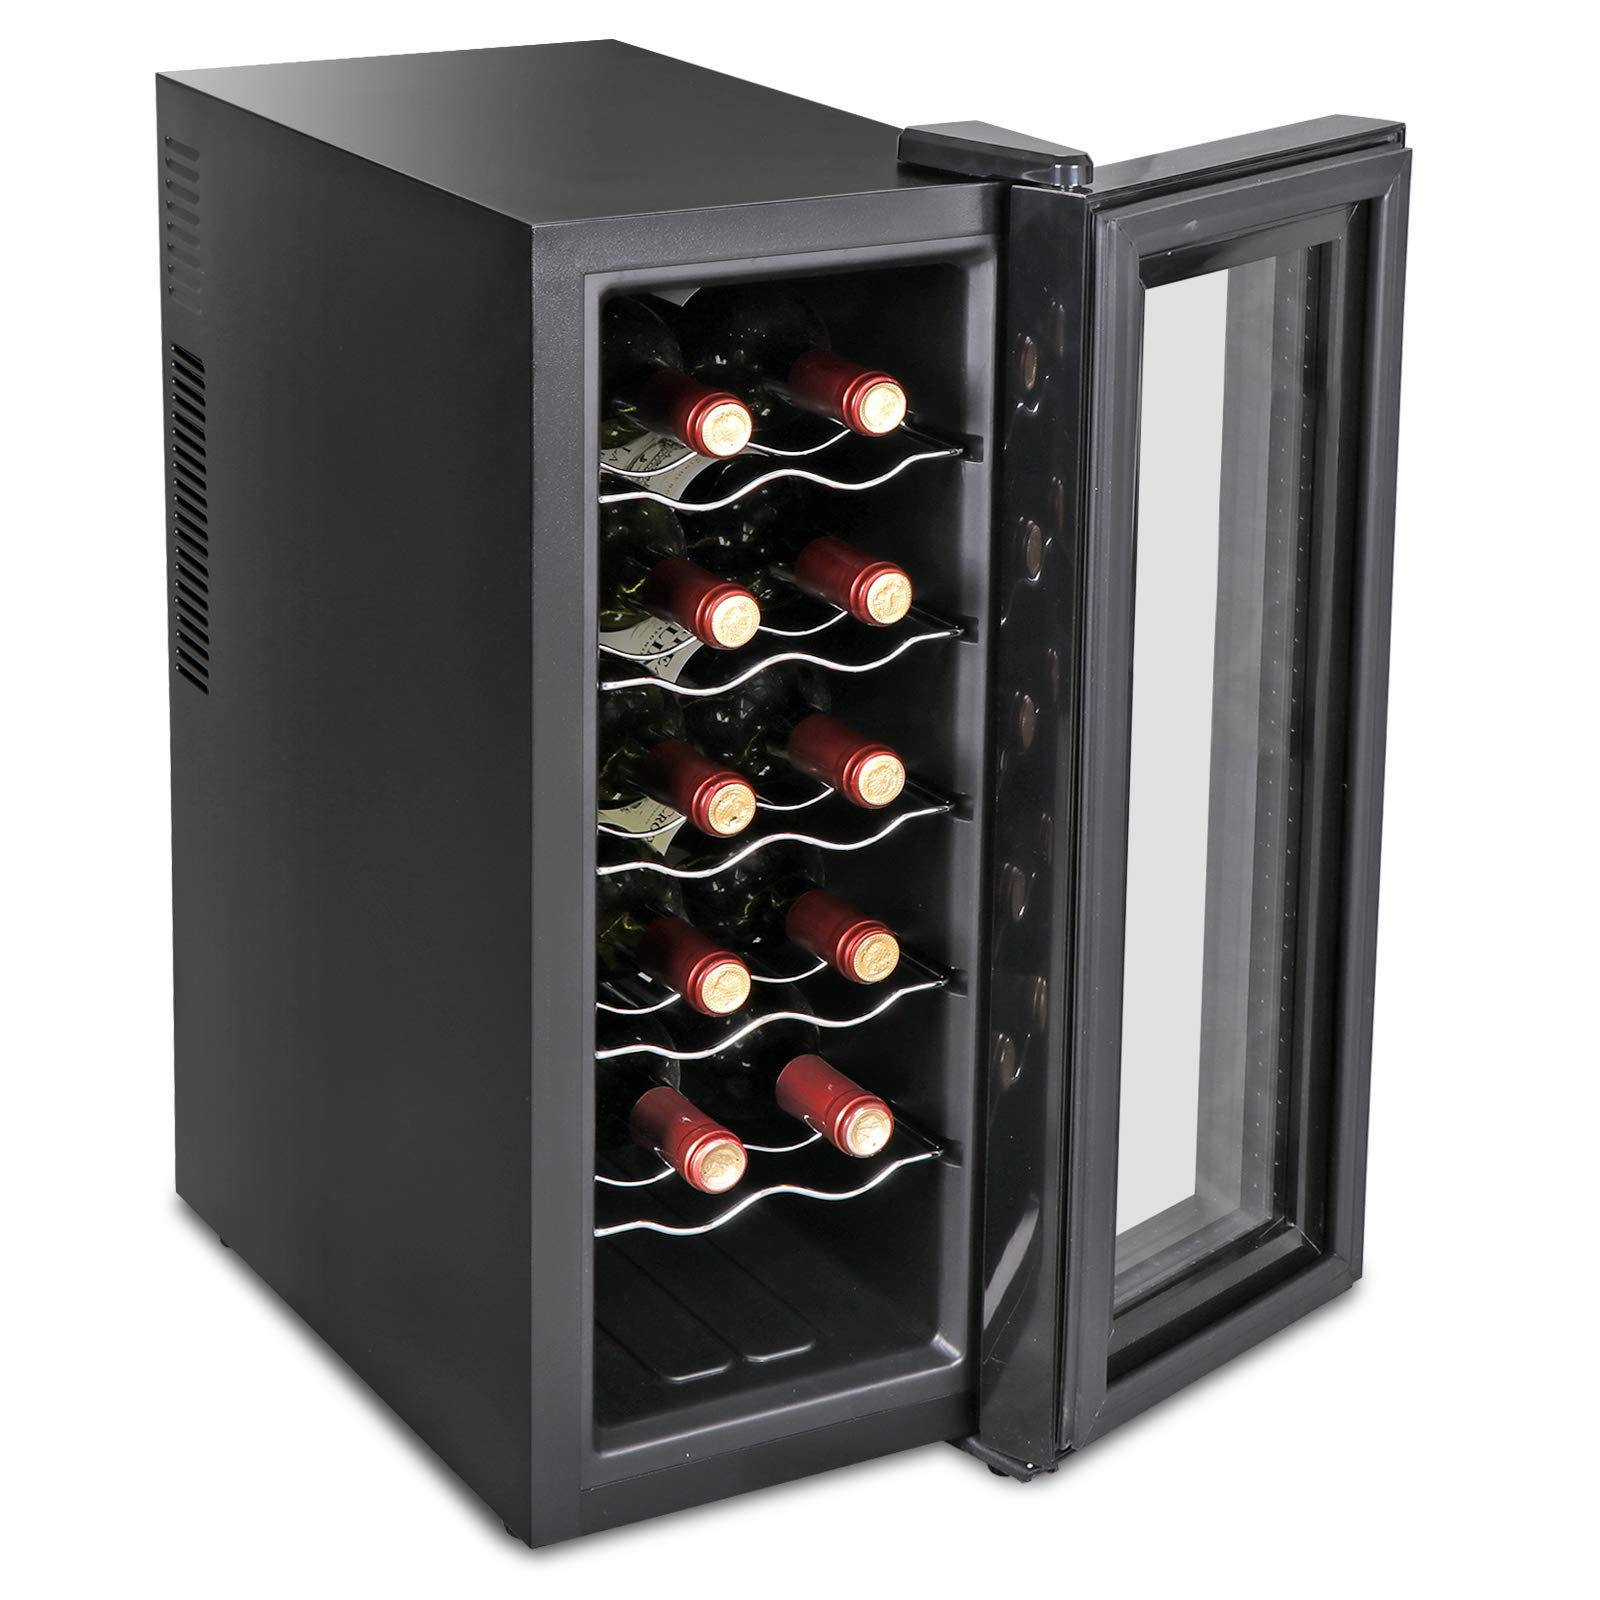 SUPER DEAL Newest 12-Bottle Thermoelectric Wine Cooler Red White Wine ChampagneChiller Counter Top Wine Cellar - Touch Screen Display - Digital Temperature Control - LED Interior Lighting - Quiet and